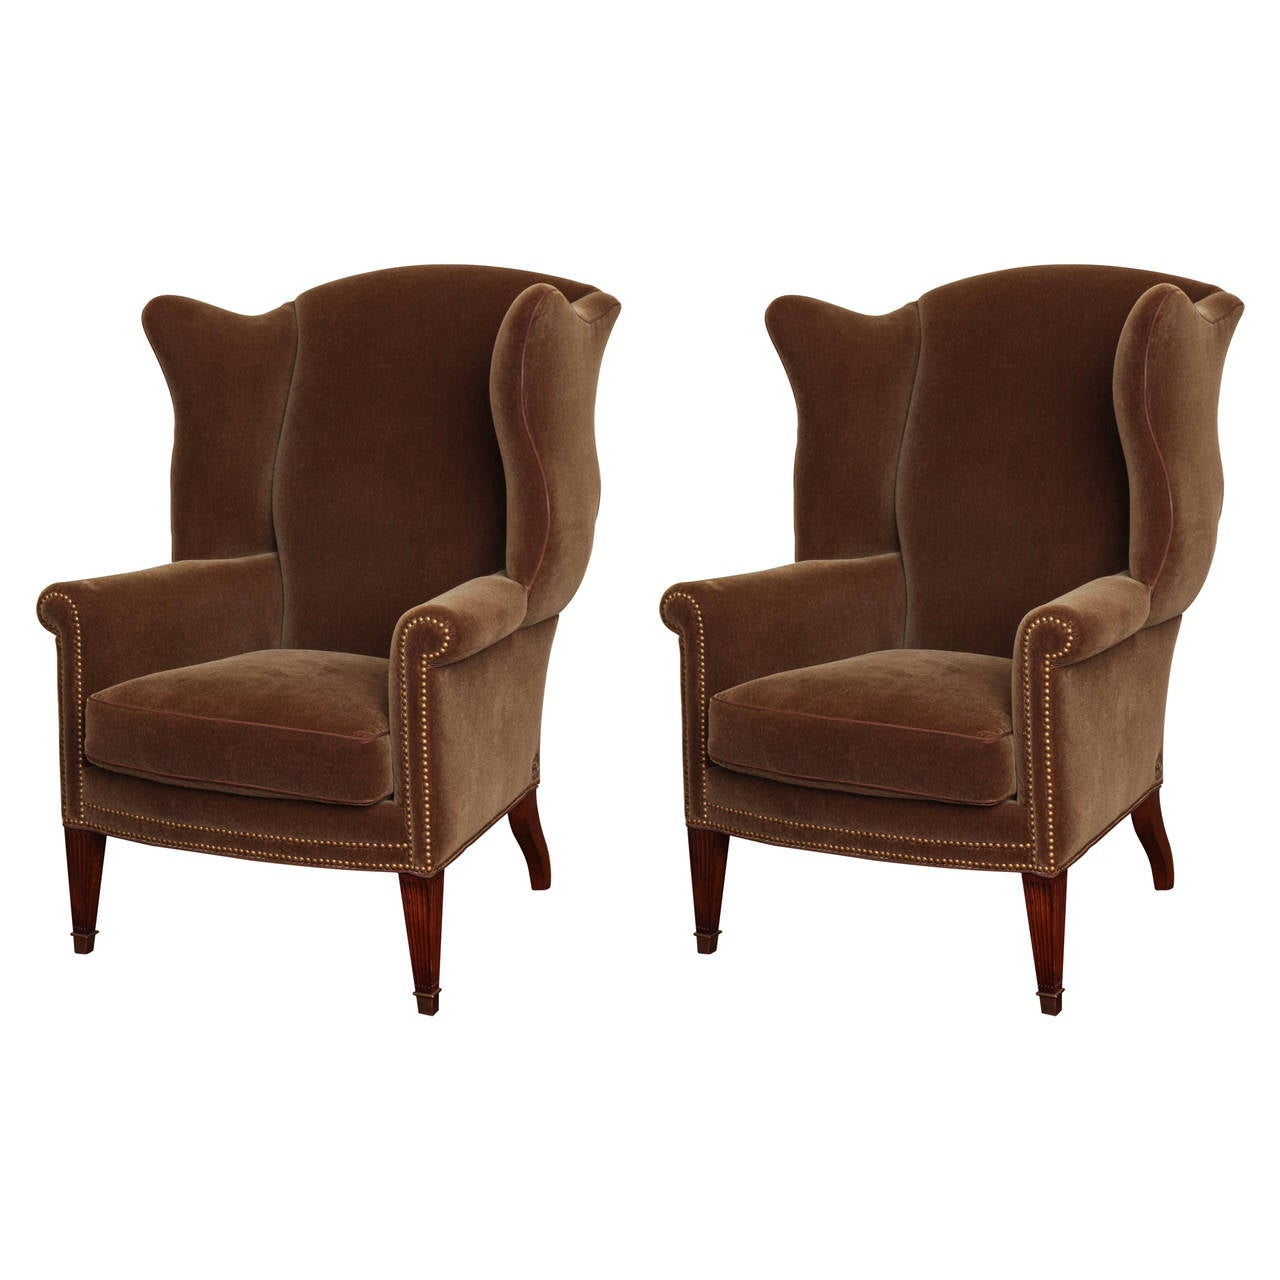 Pair of George III Style Mahogany Wing Chairs at 1stdibs